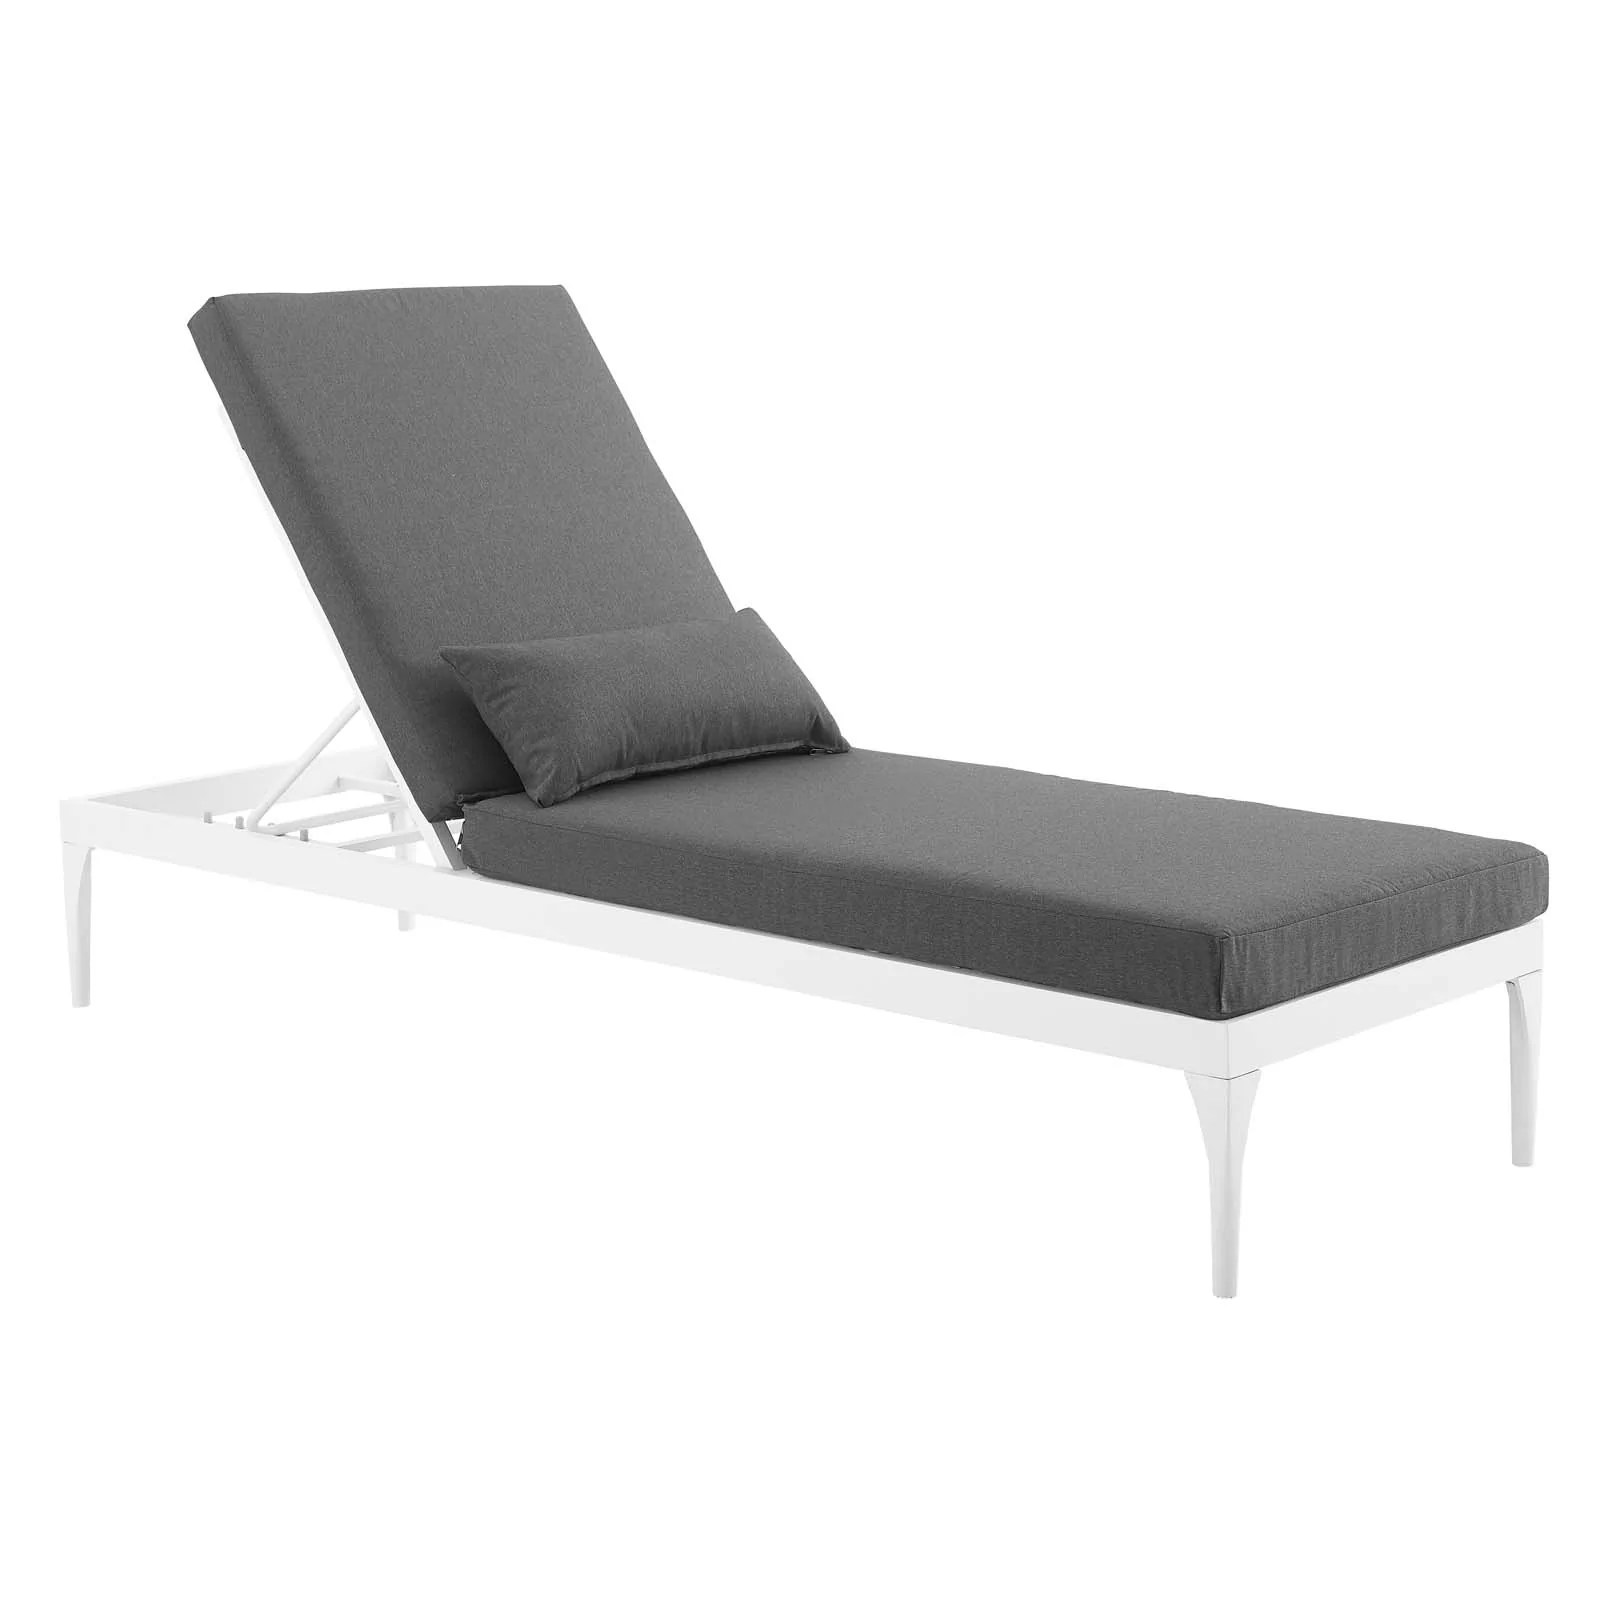 White Outdoor Lounge Chair Modway Outdoor Lounge Chairs On Sale Eei 3301 Whi Cha Perspective Cushion Outdoor Patio Chaise Lounge Chair Only Only 477 25 At Contemporary